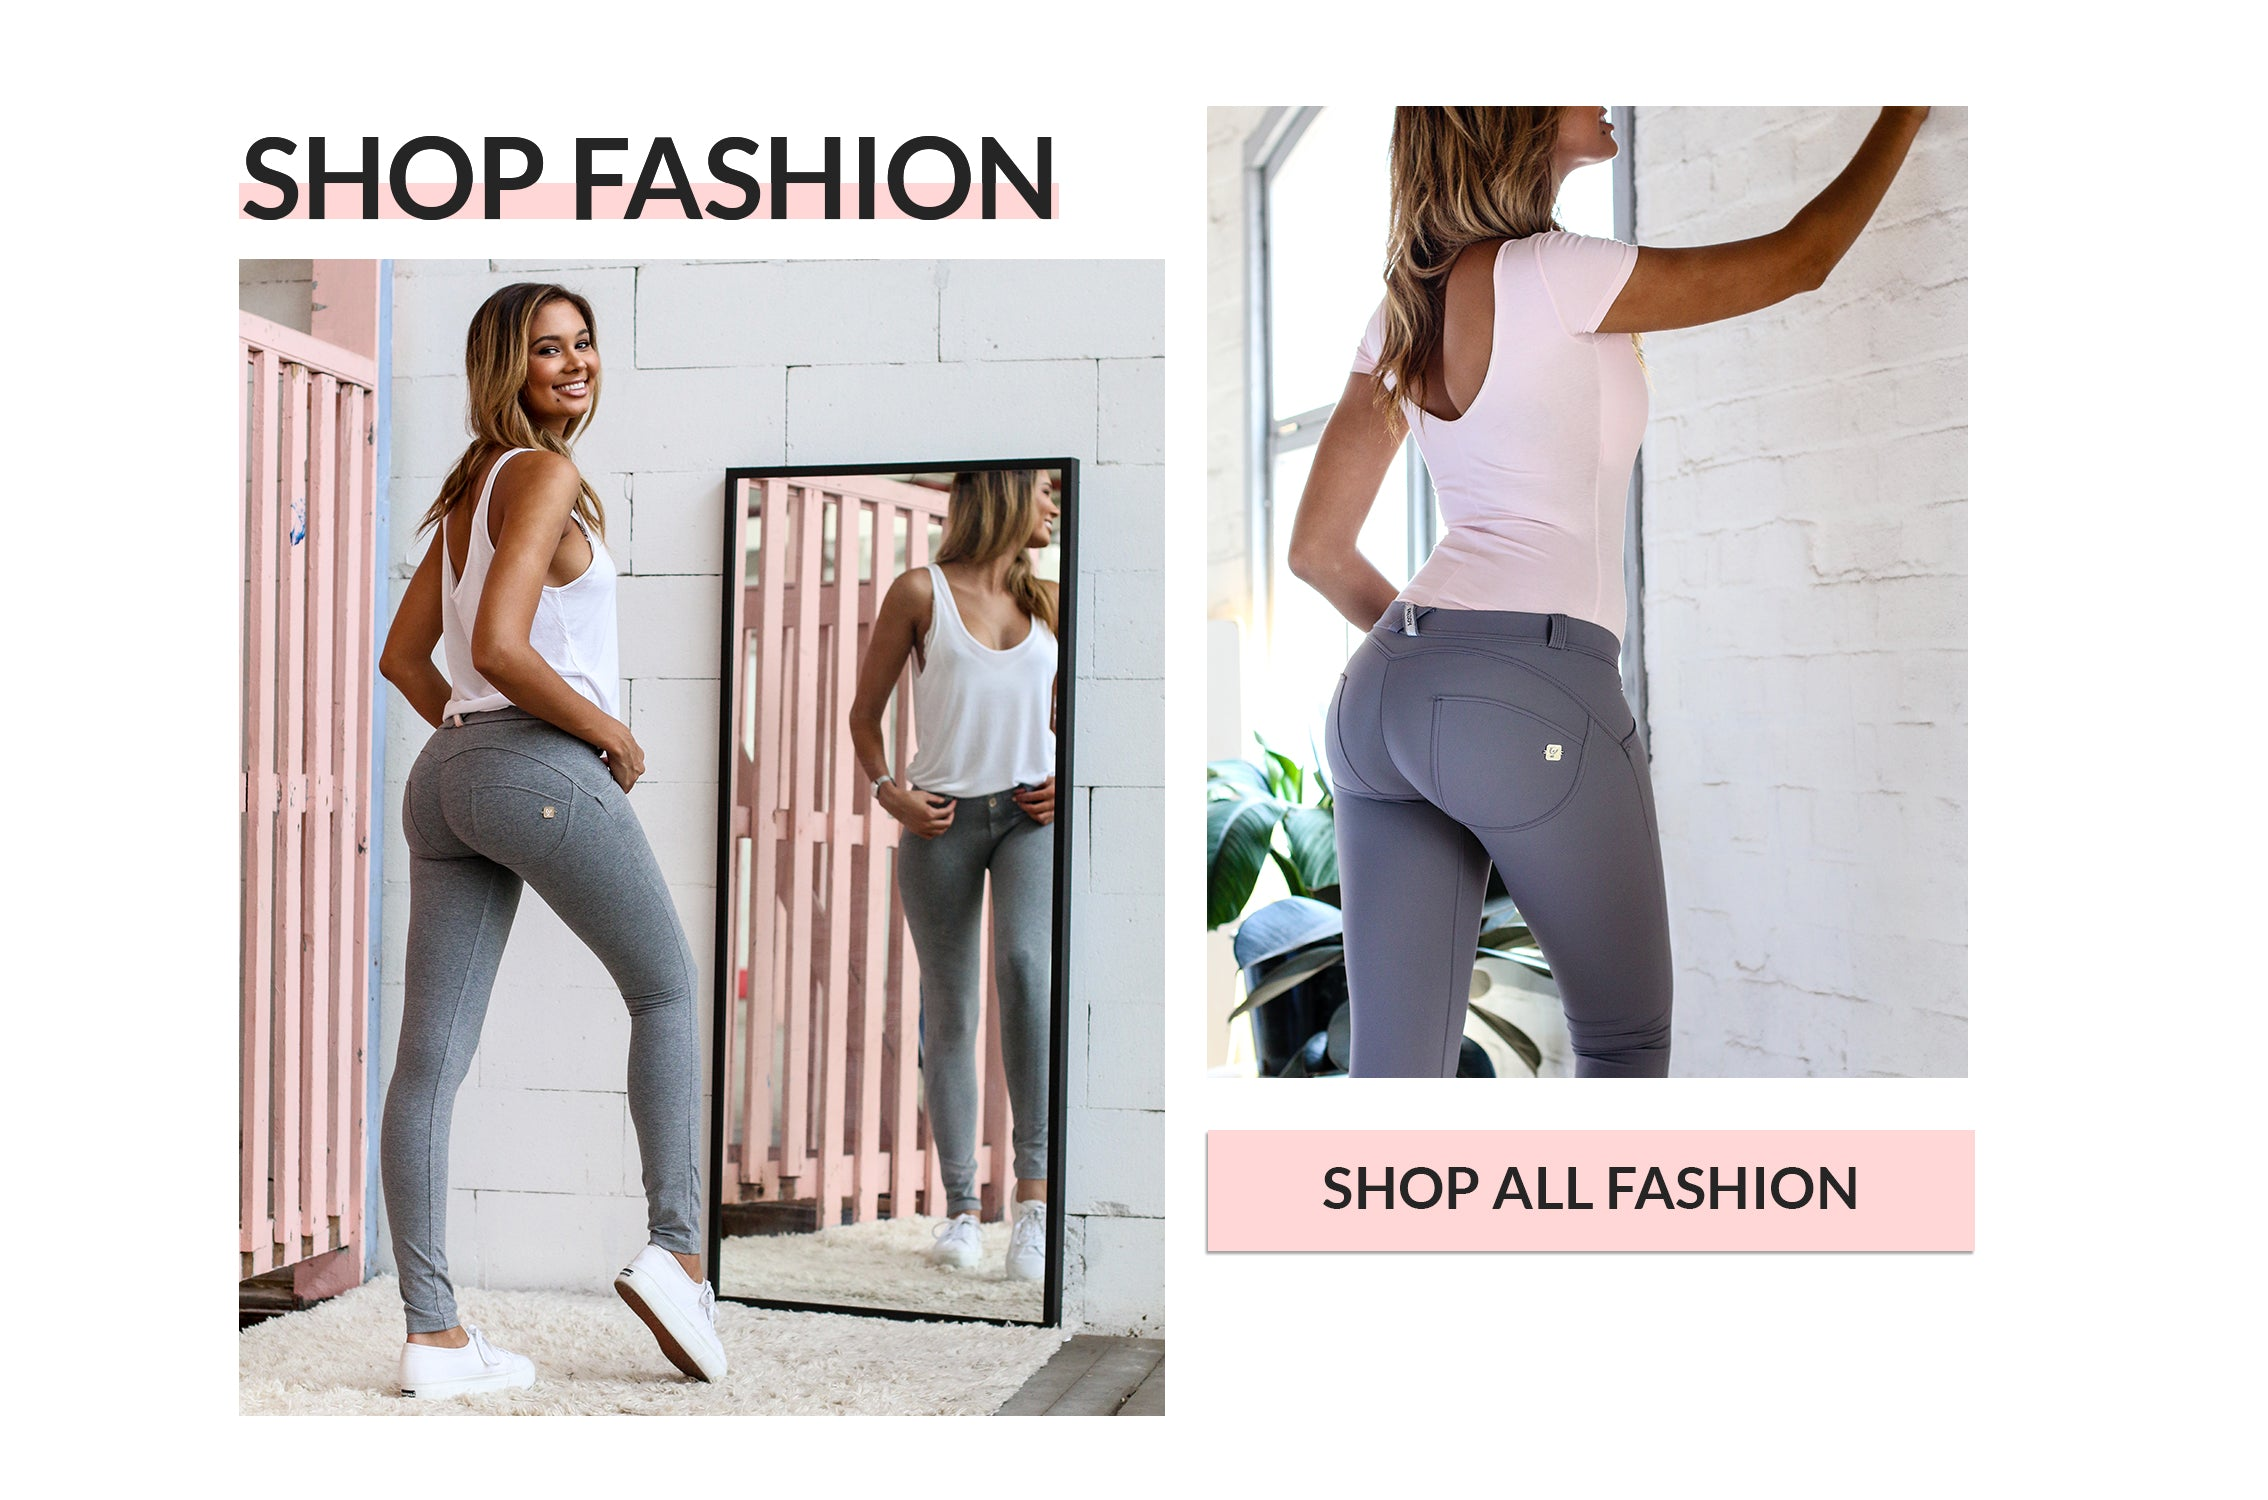 Shop all fashion